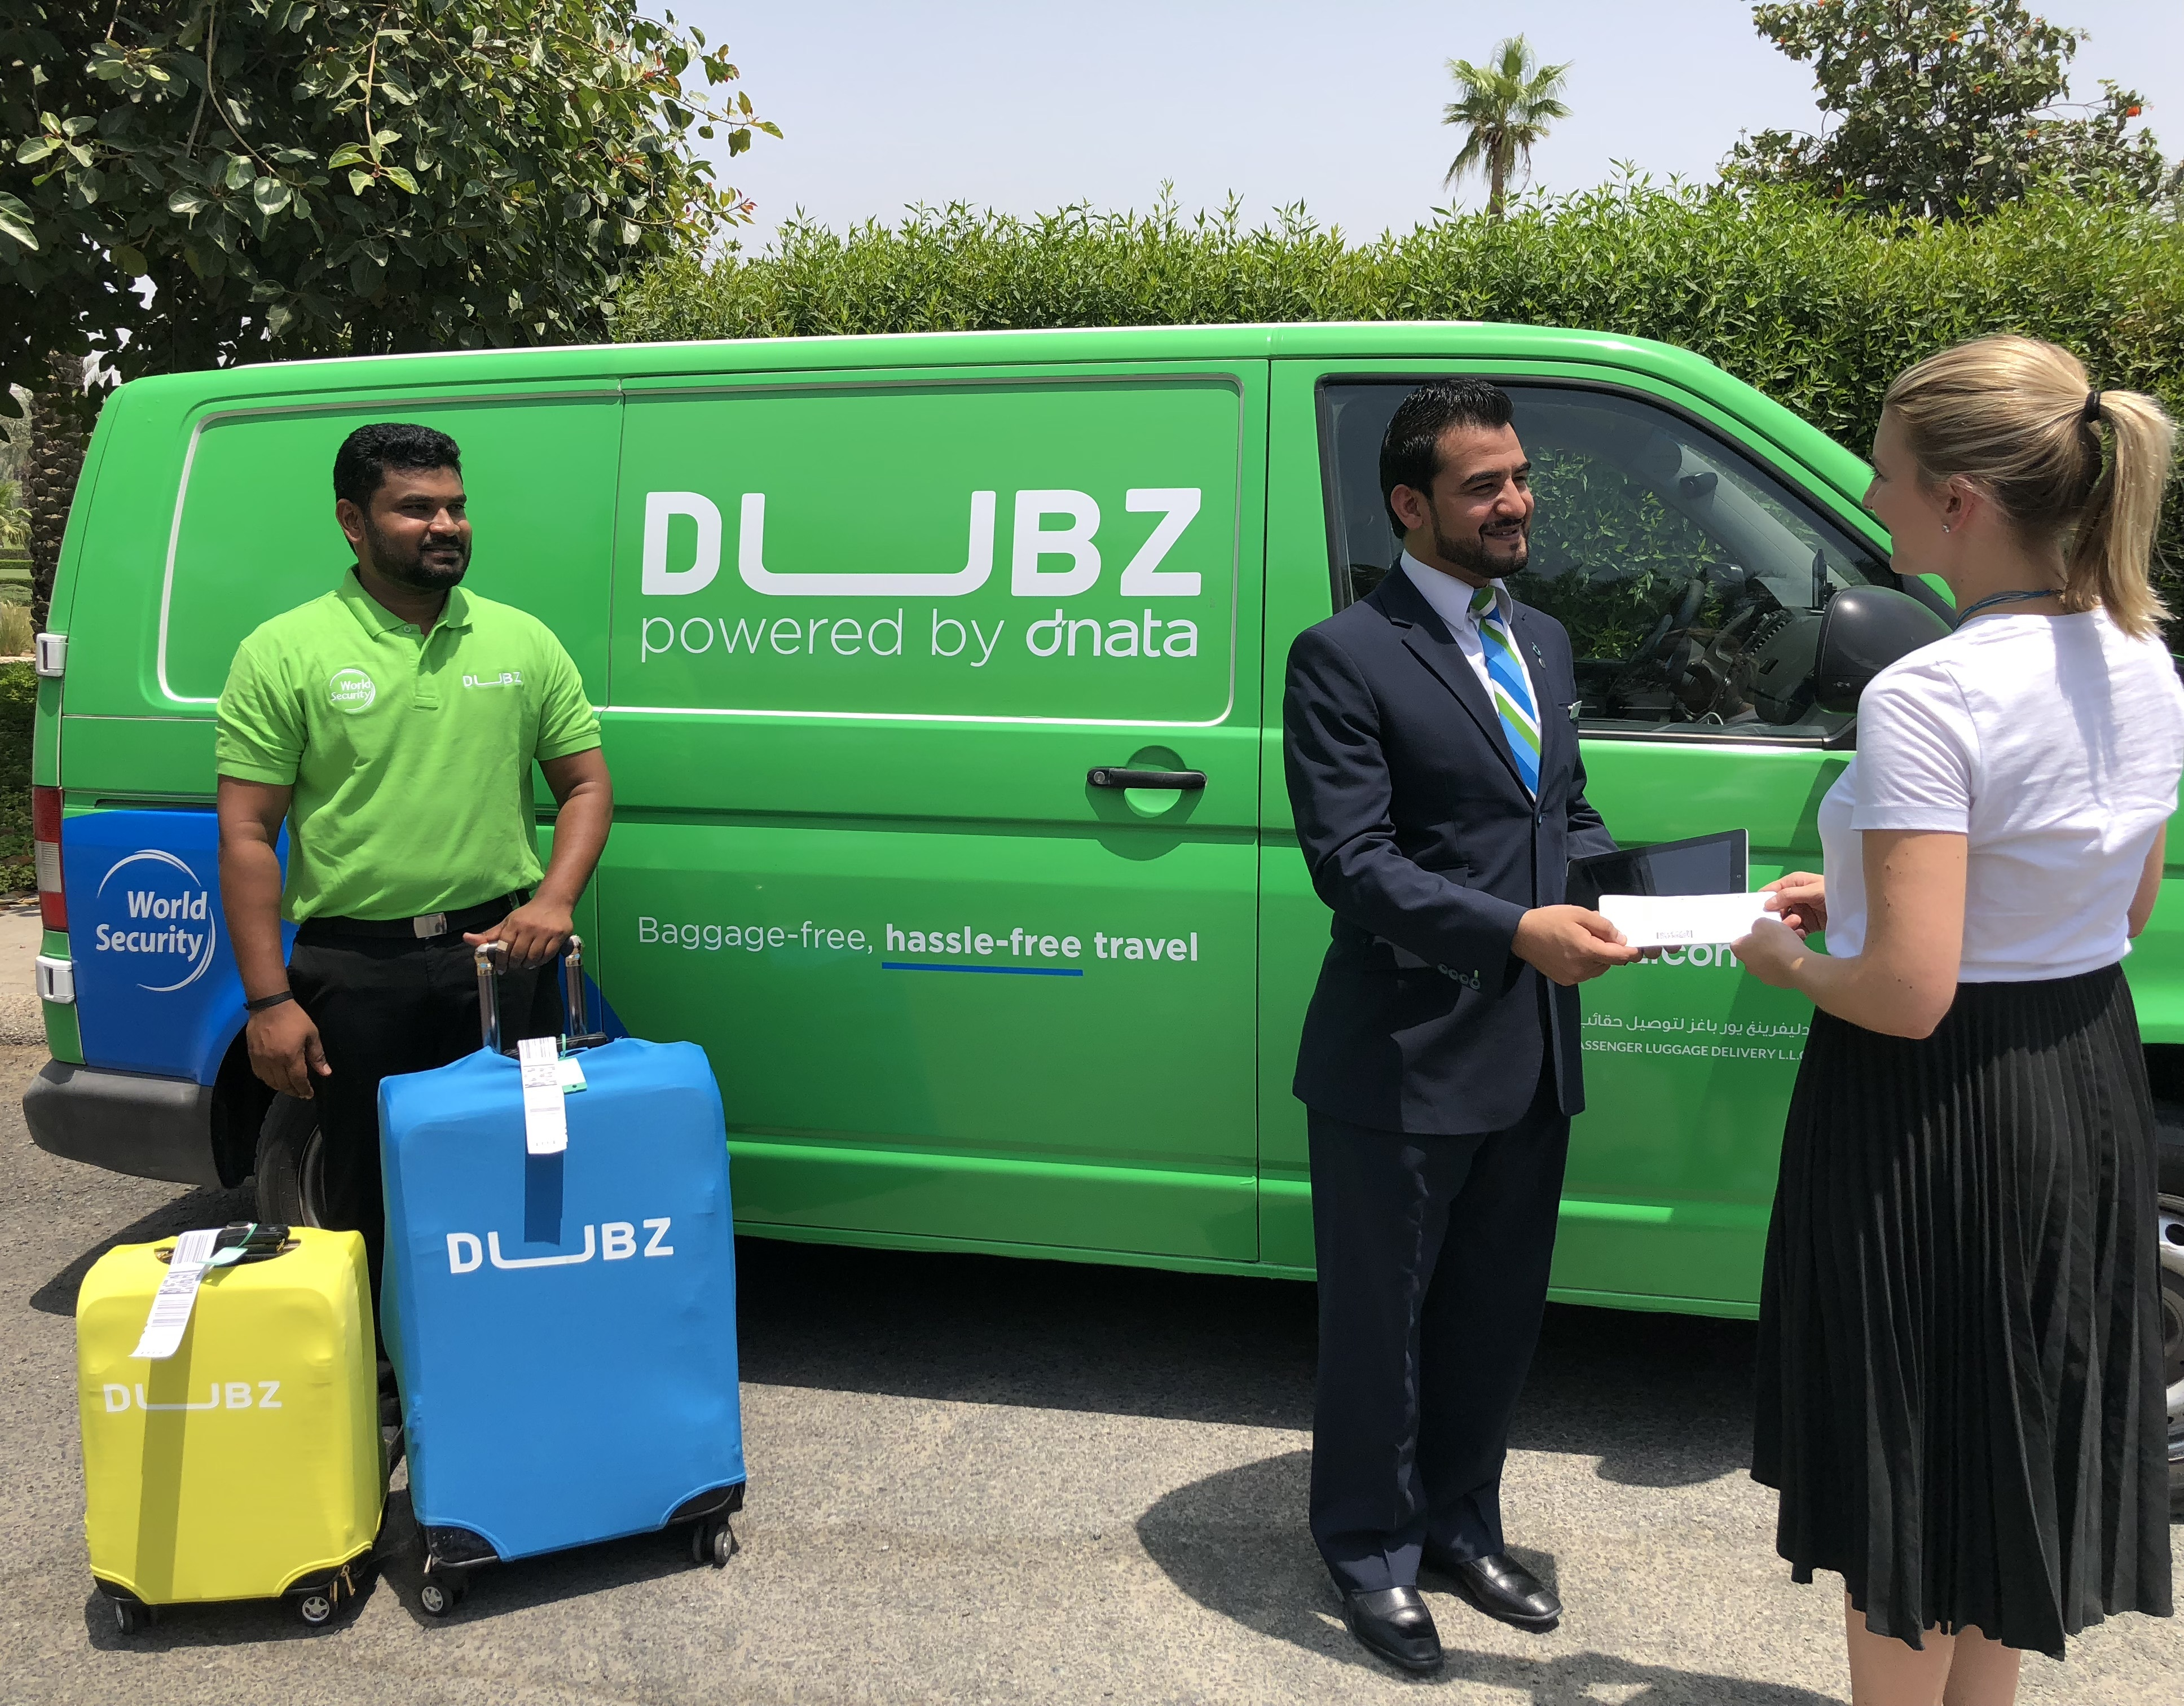 dnata acquires majority stake in baggage storage and delivery service company, DUBZ